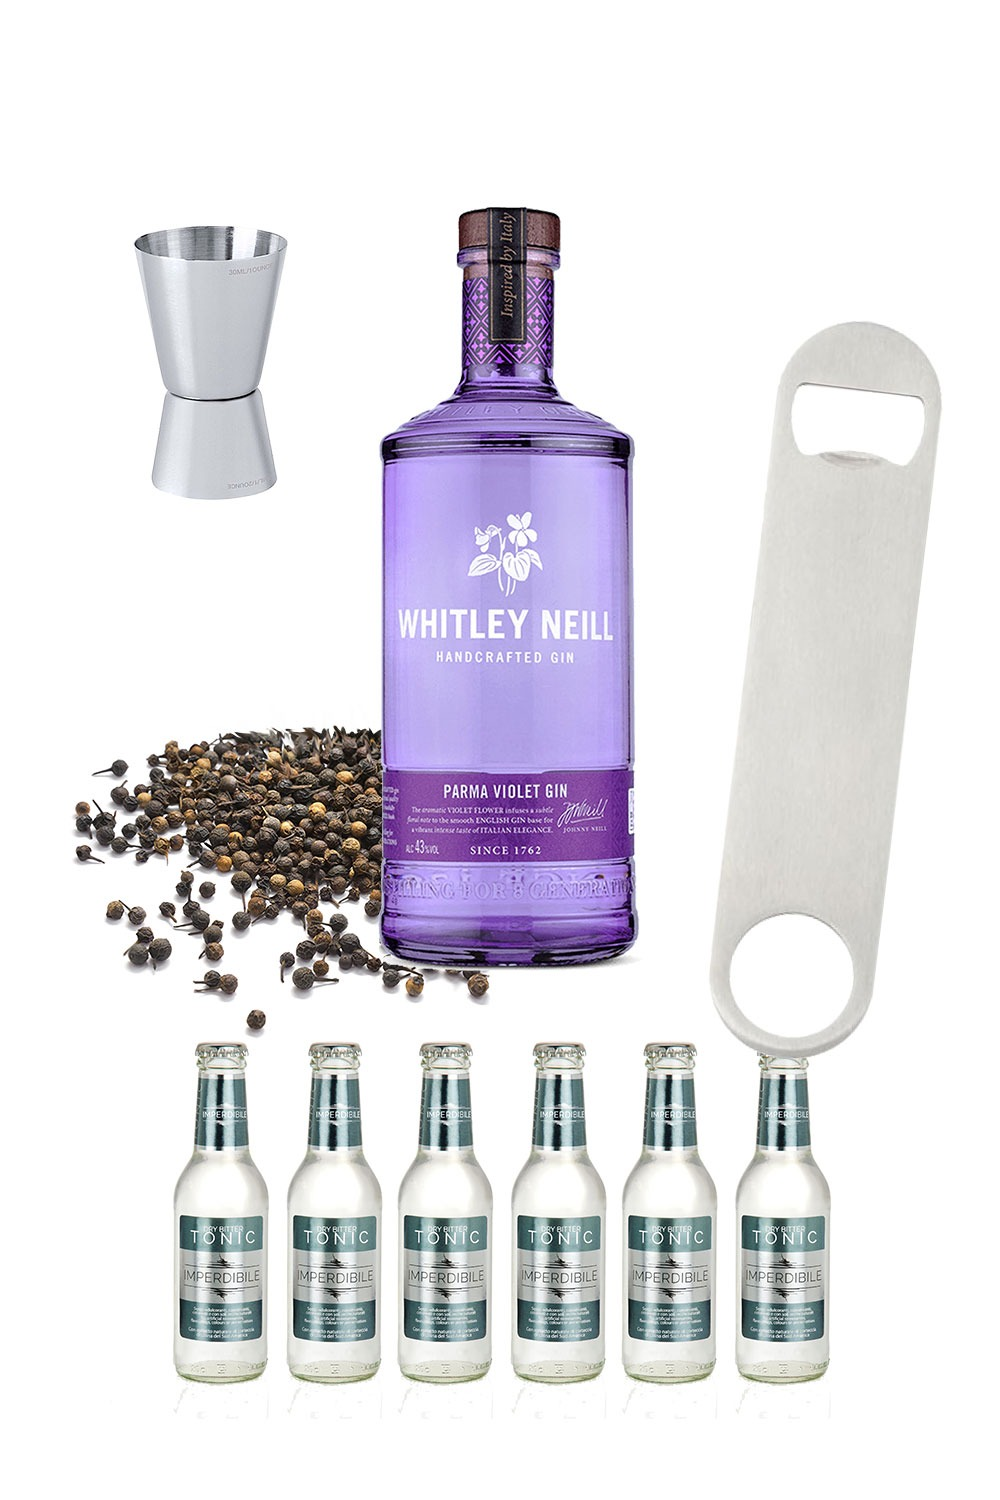 Whitley Neill Parma Violet – Partystarter